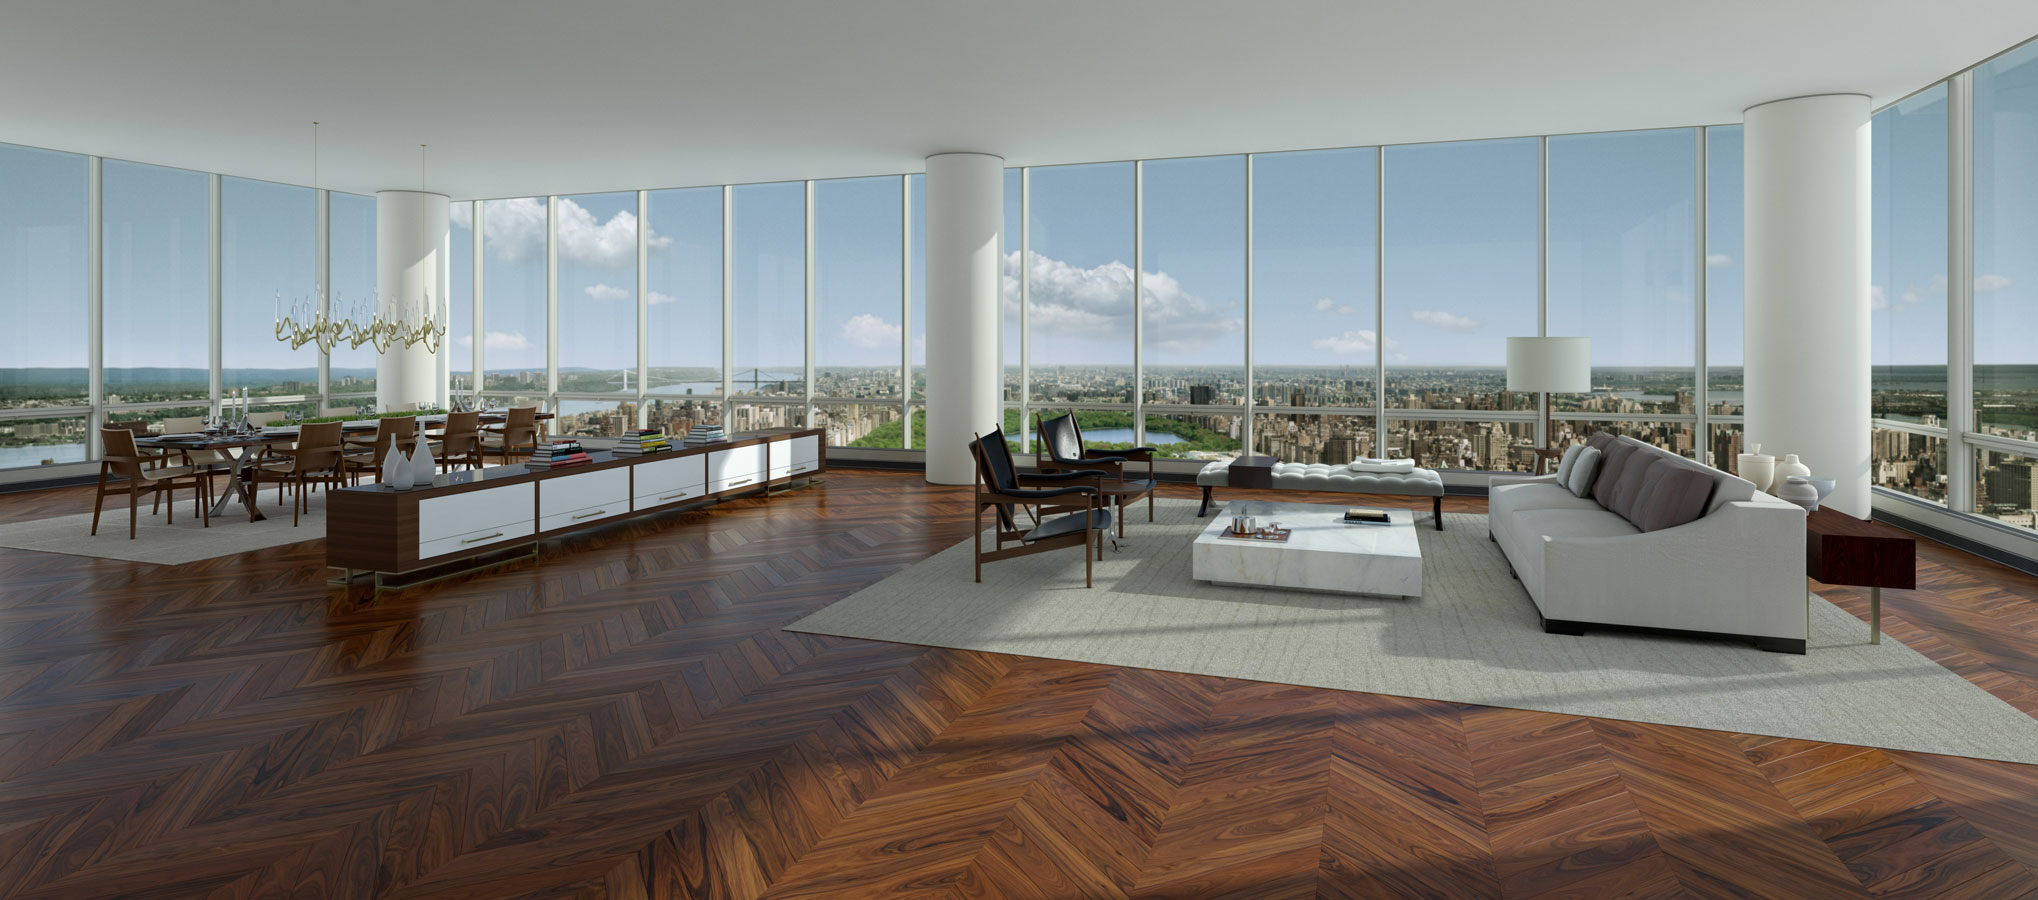 7 most expensive penthouses in the u s for Expensive penthouses in nyc